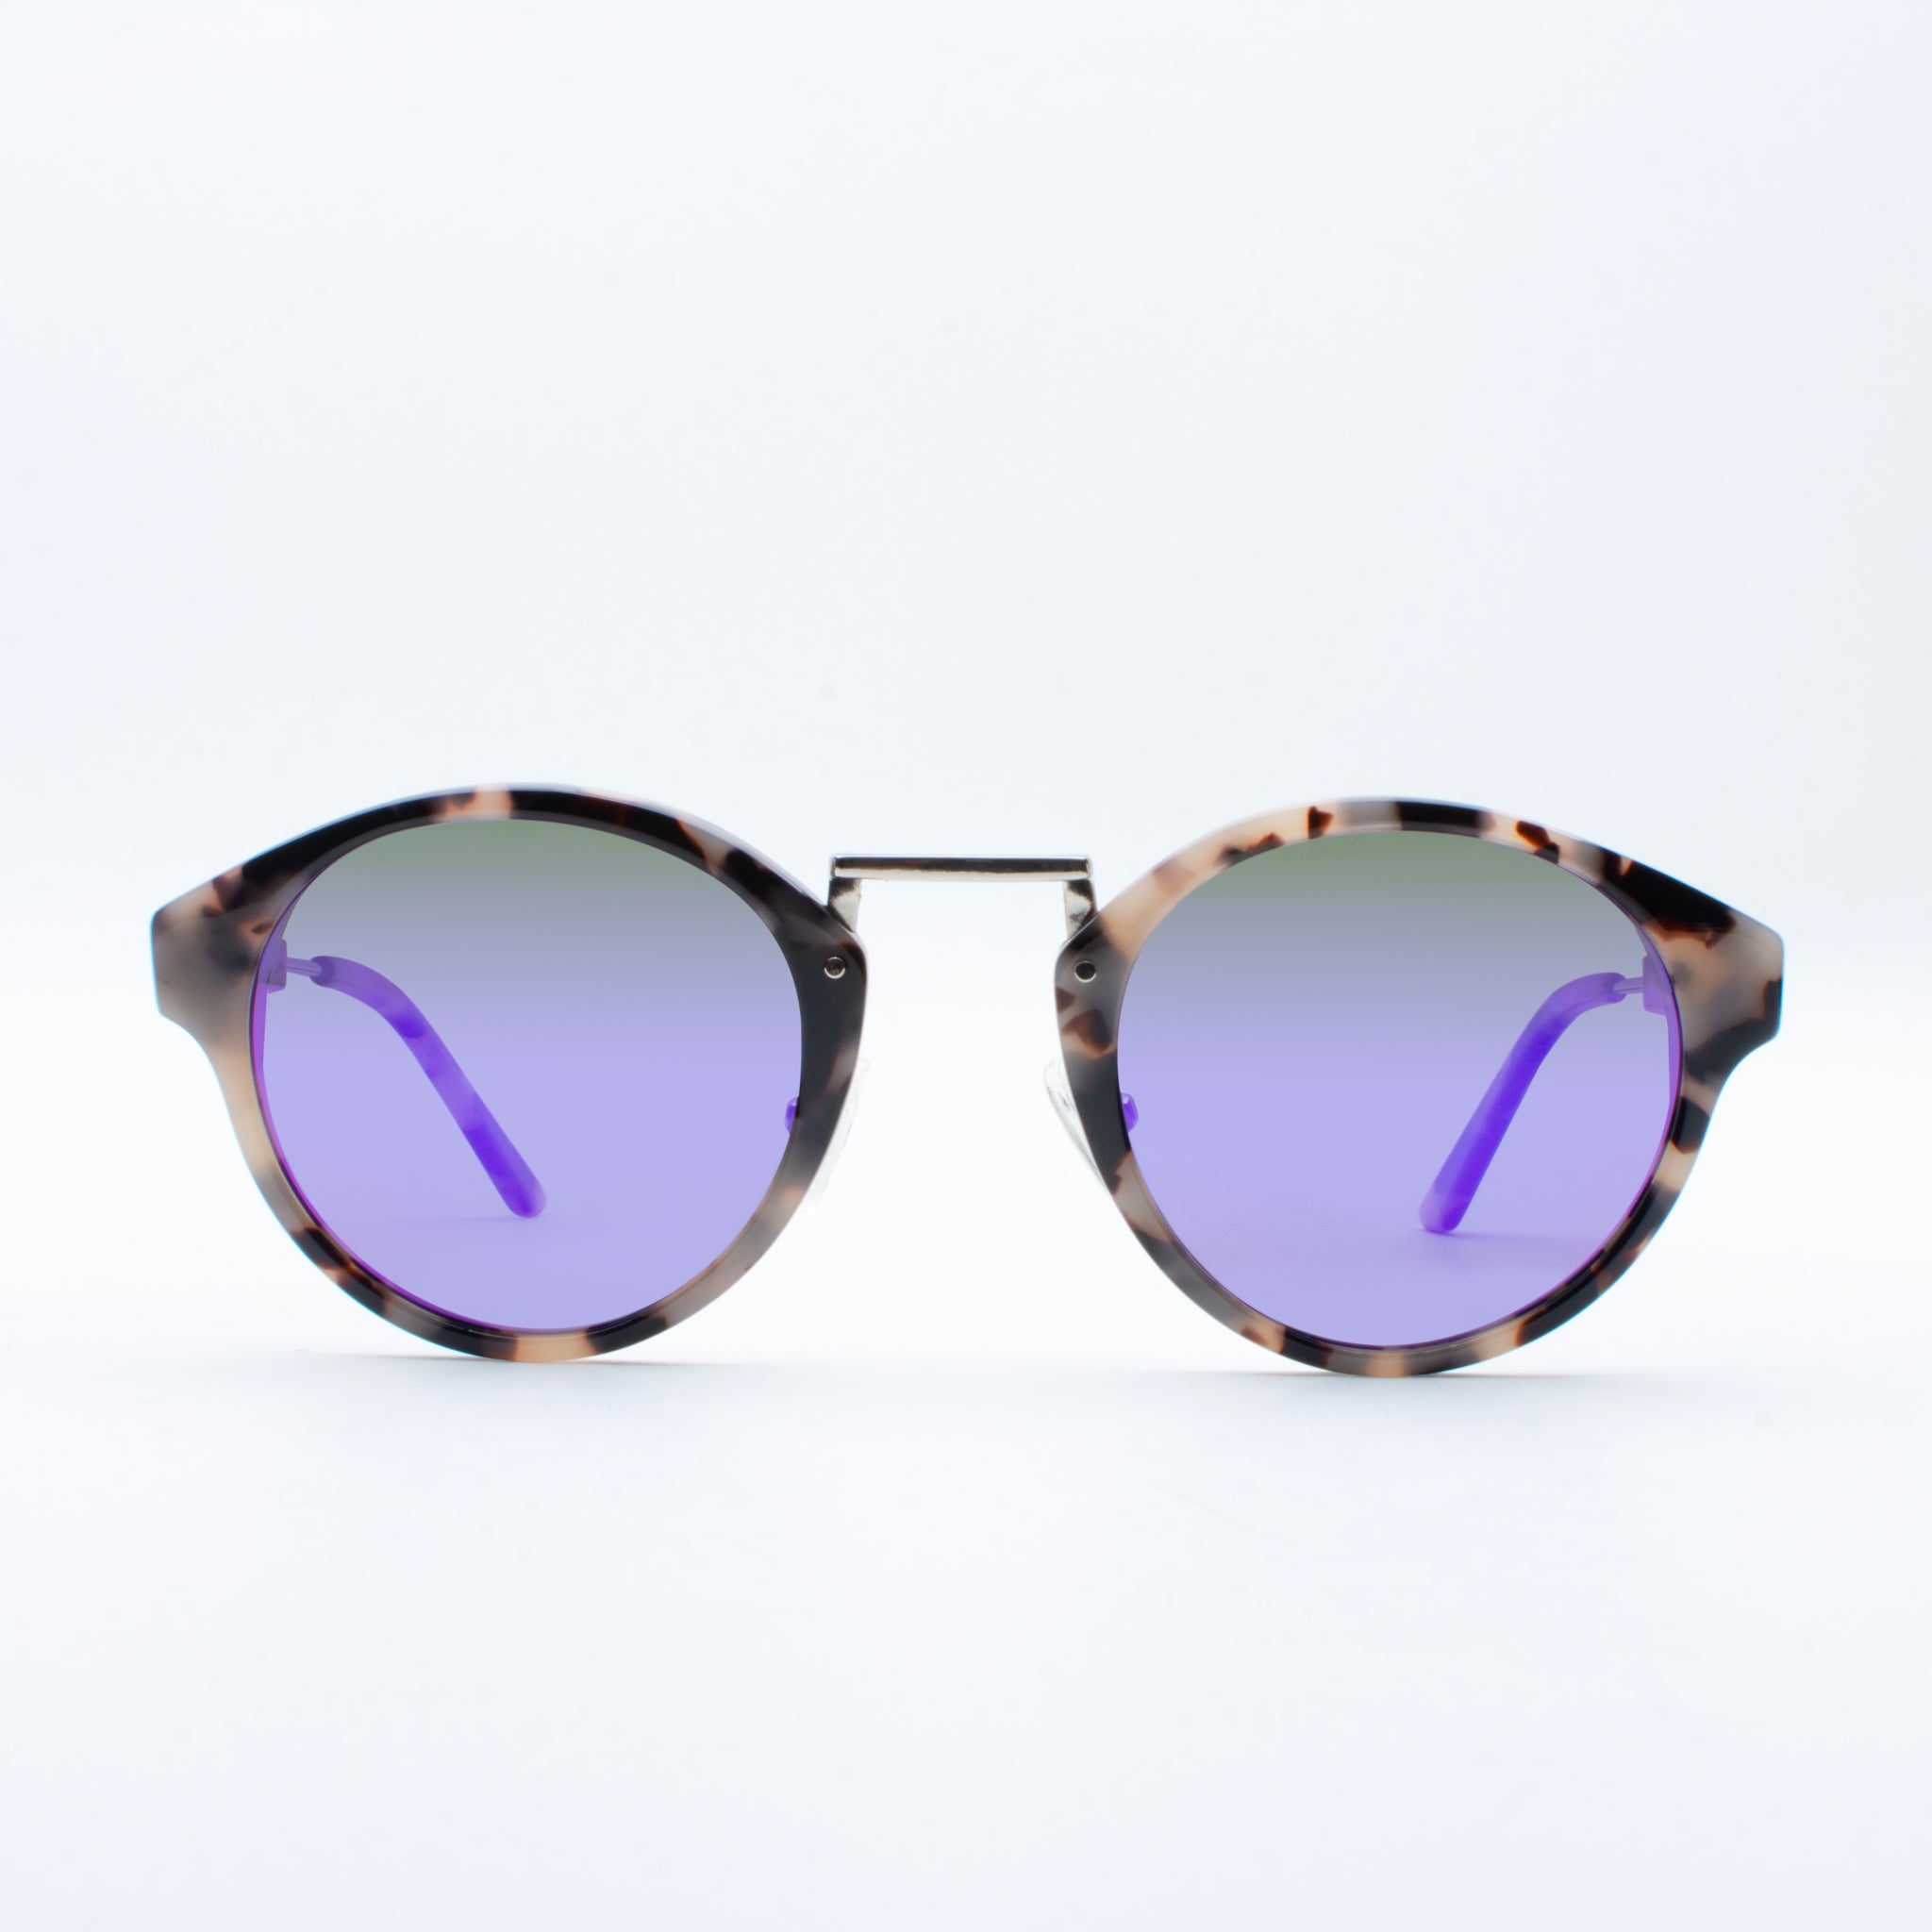 WOODEN SUNGLASSES KIRAN PURPLE SUKI